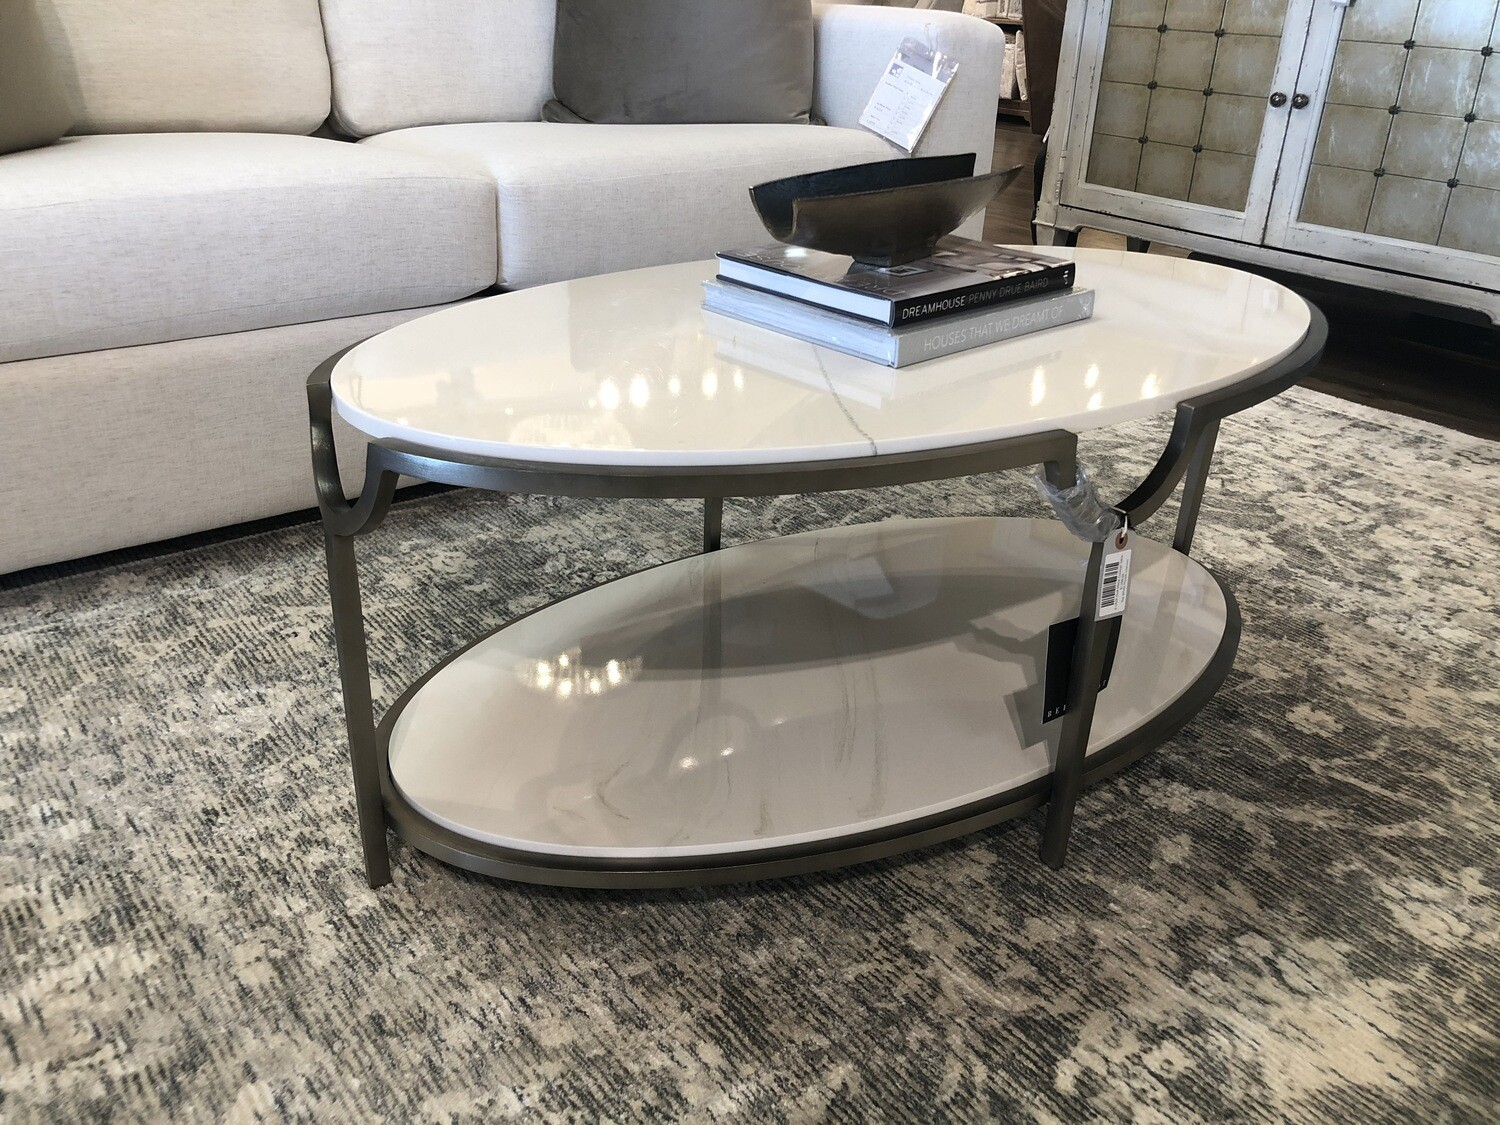 2-LR26 Oval Metal Cocktail Table